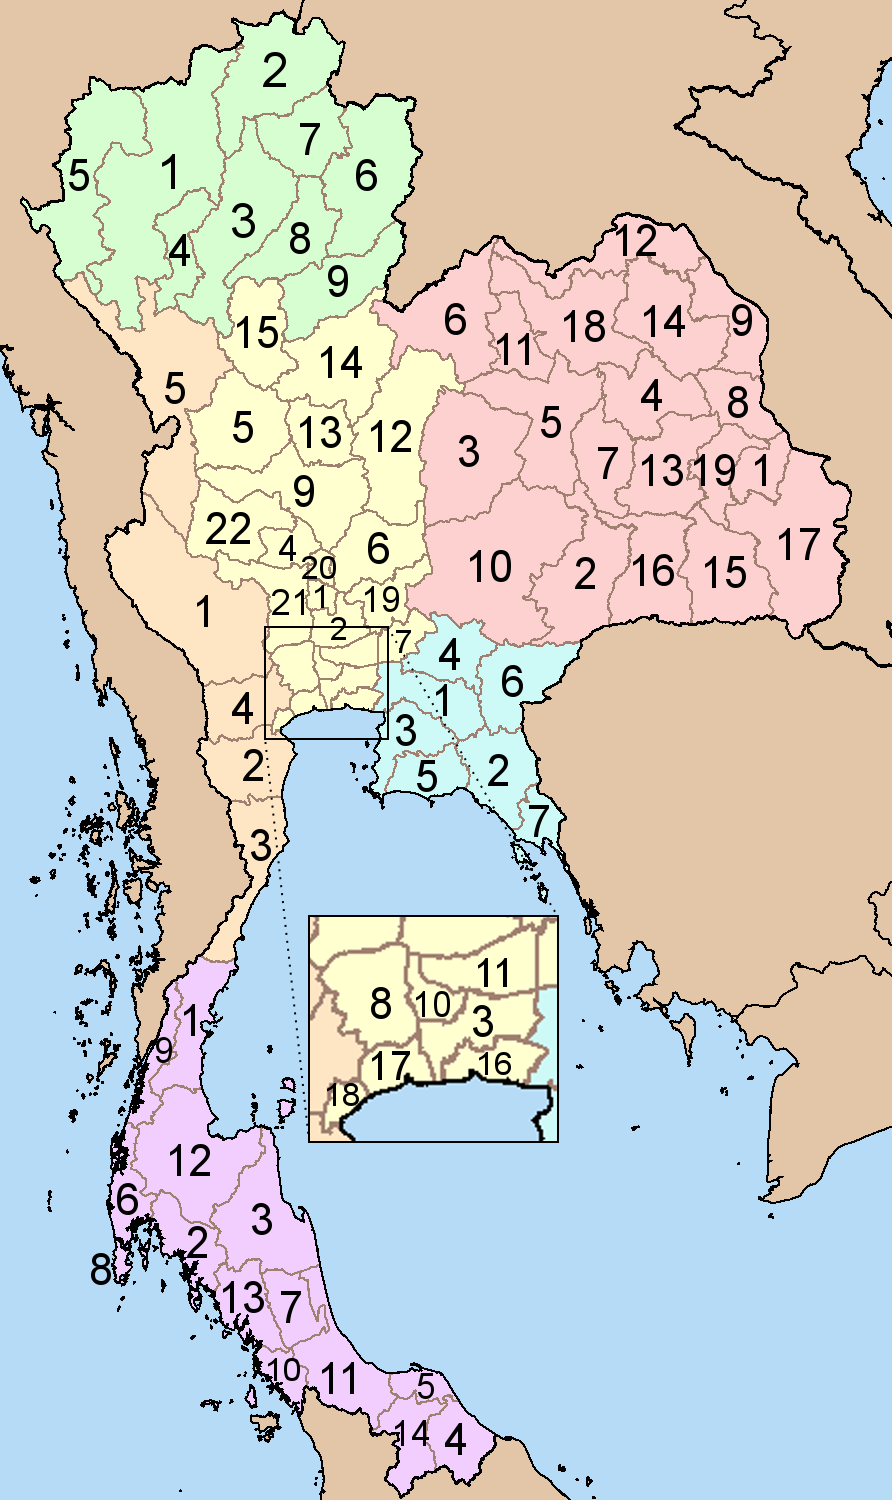 FileThailand provinces six regionspng Wikimedia Commons